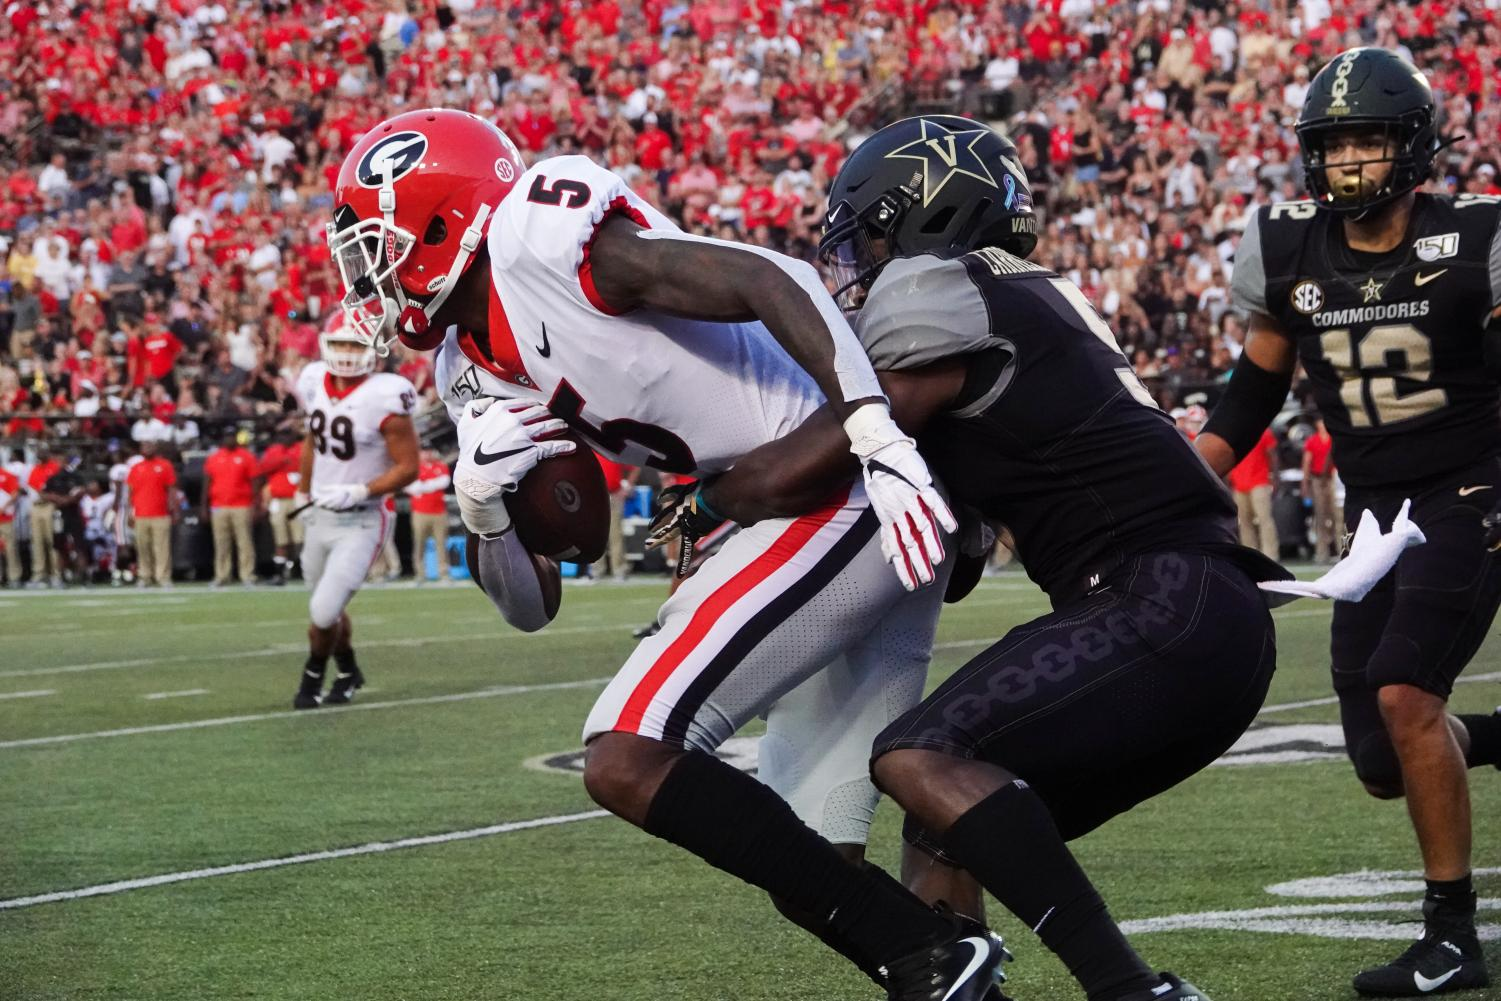 DC+Williams+holds+back+a+Georgia+player.+%28Photo+by+Mattigan+Kelly%29